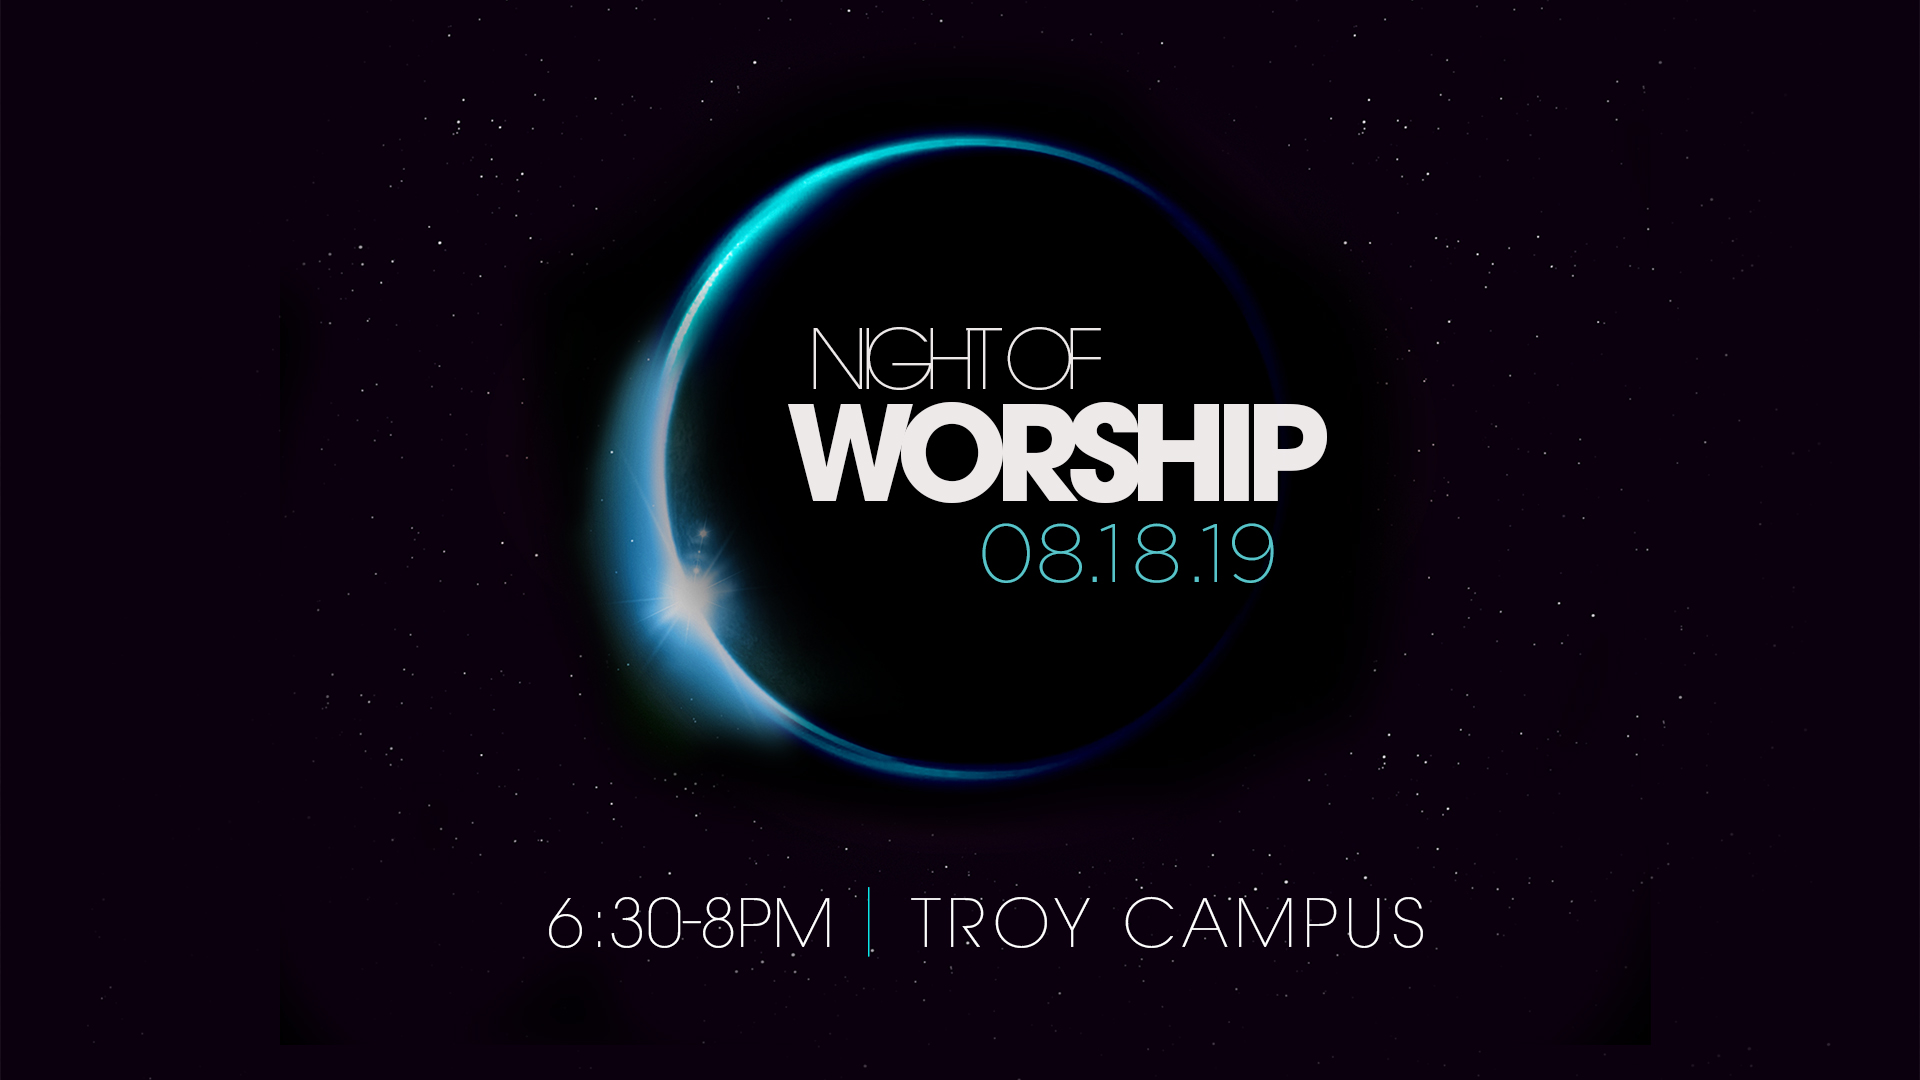 Night of Worship - Troy Campus